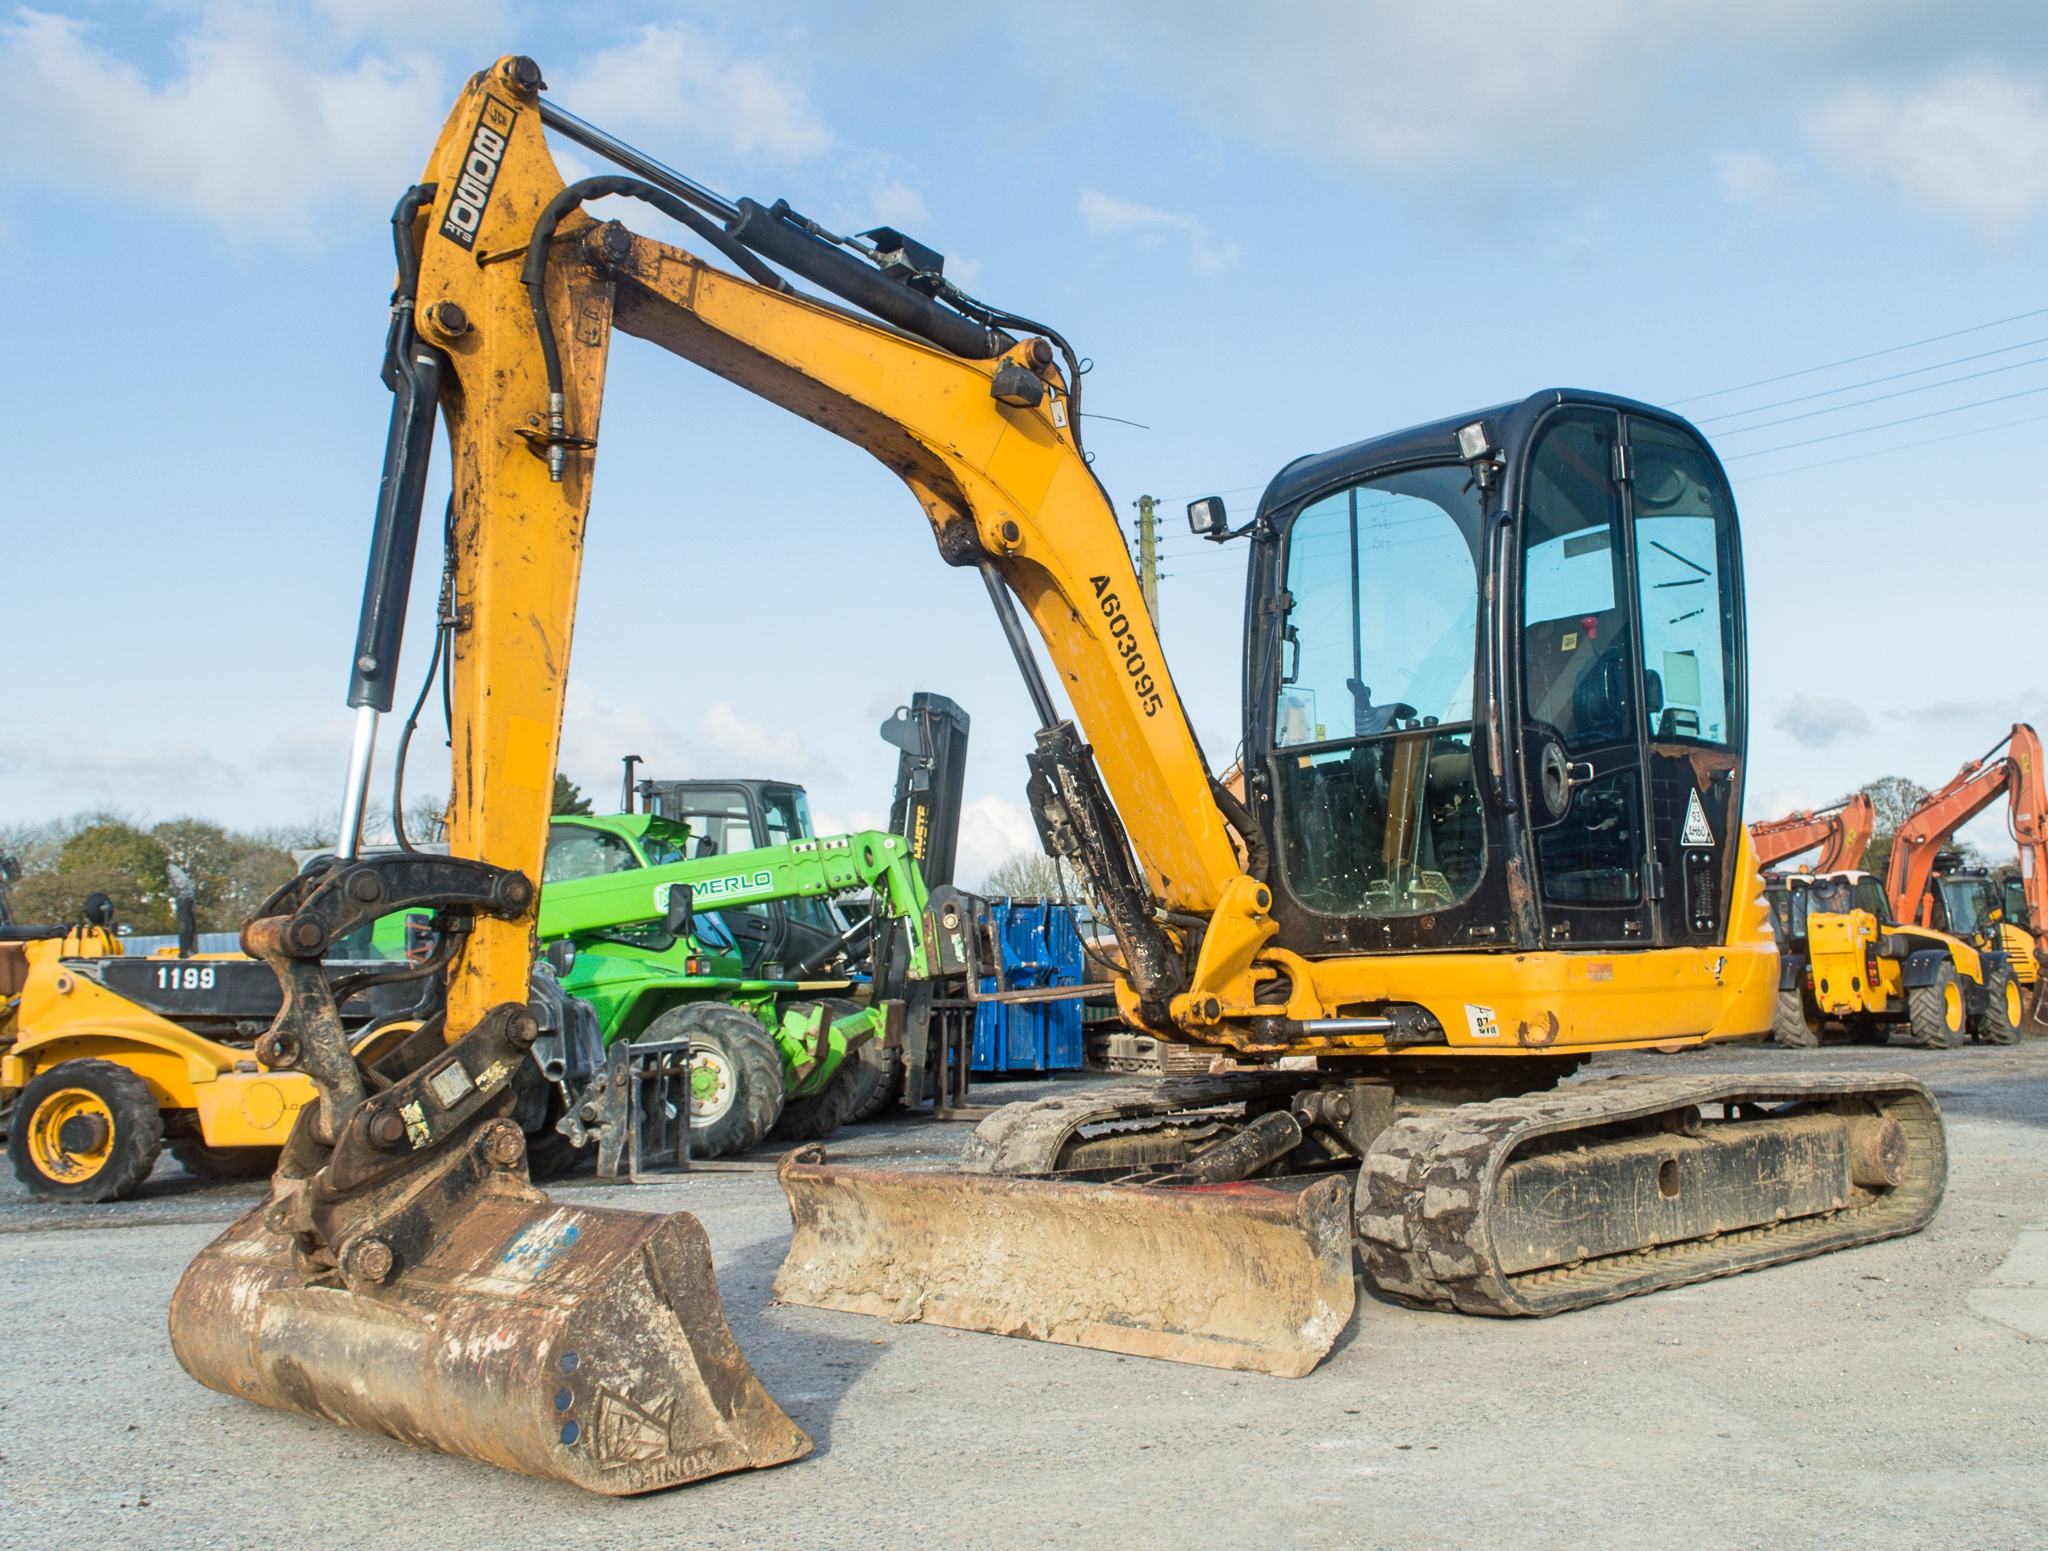 Lot 10 - JCB 8050 RTS 5 tonne rubber tracked midi excavator Year: 2013 S/N: 1741865 Recorded Hours: 2397